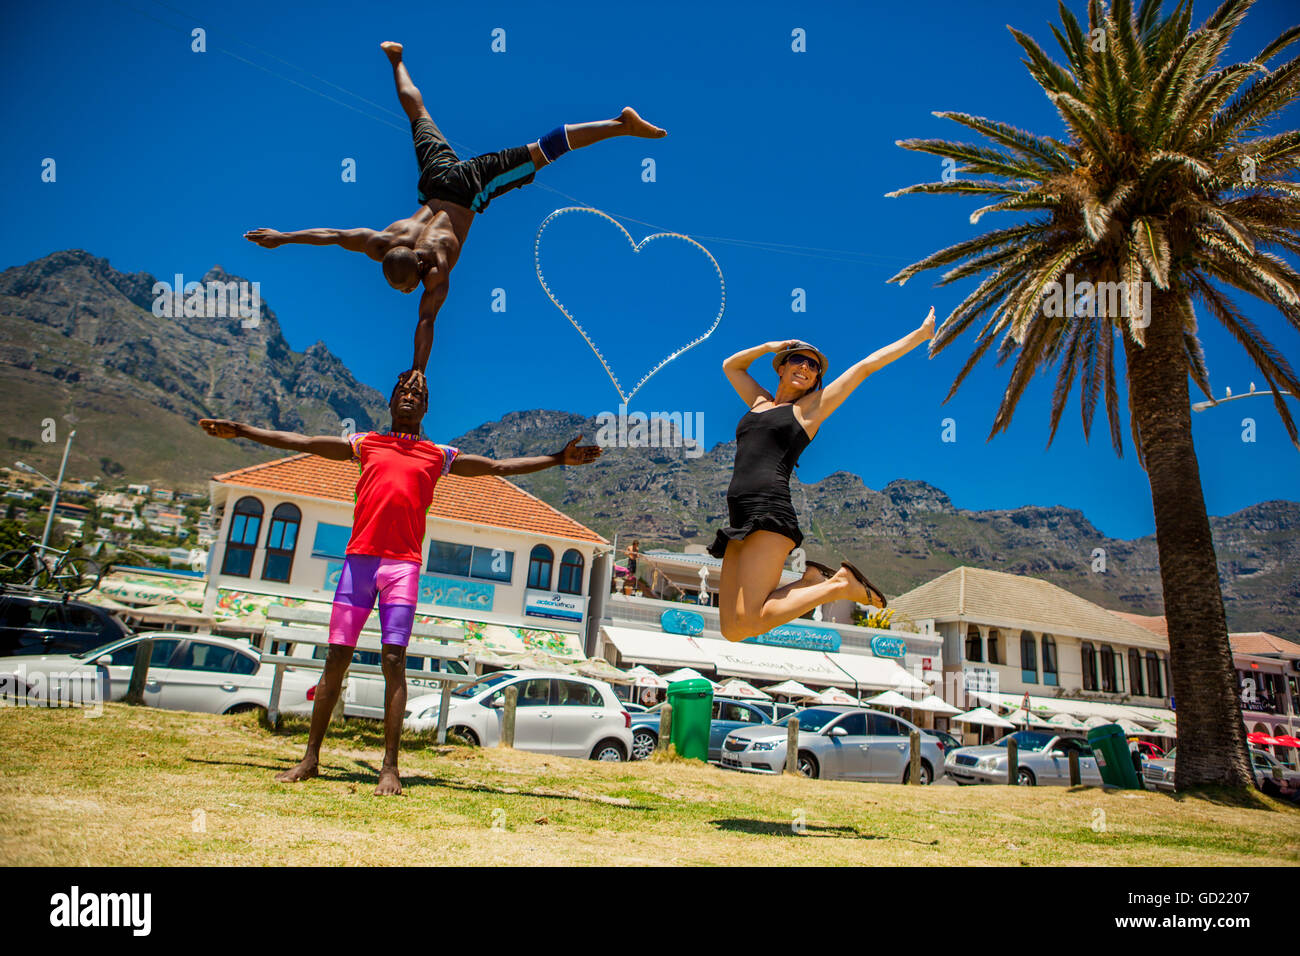 Laura Grier jumping with African acrobats, Camps Bay, South Africa, Africa - Stock Image